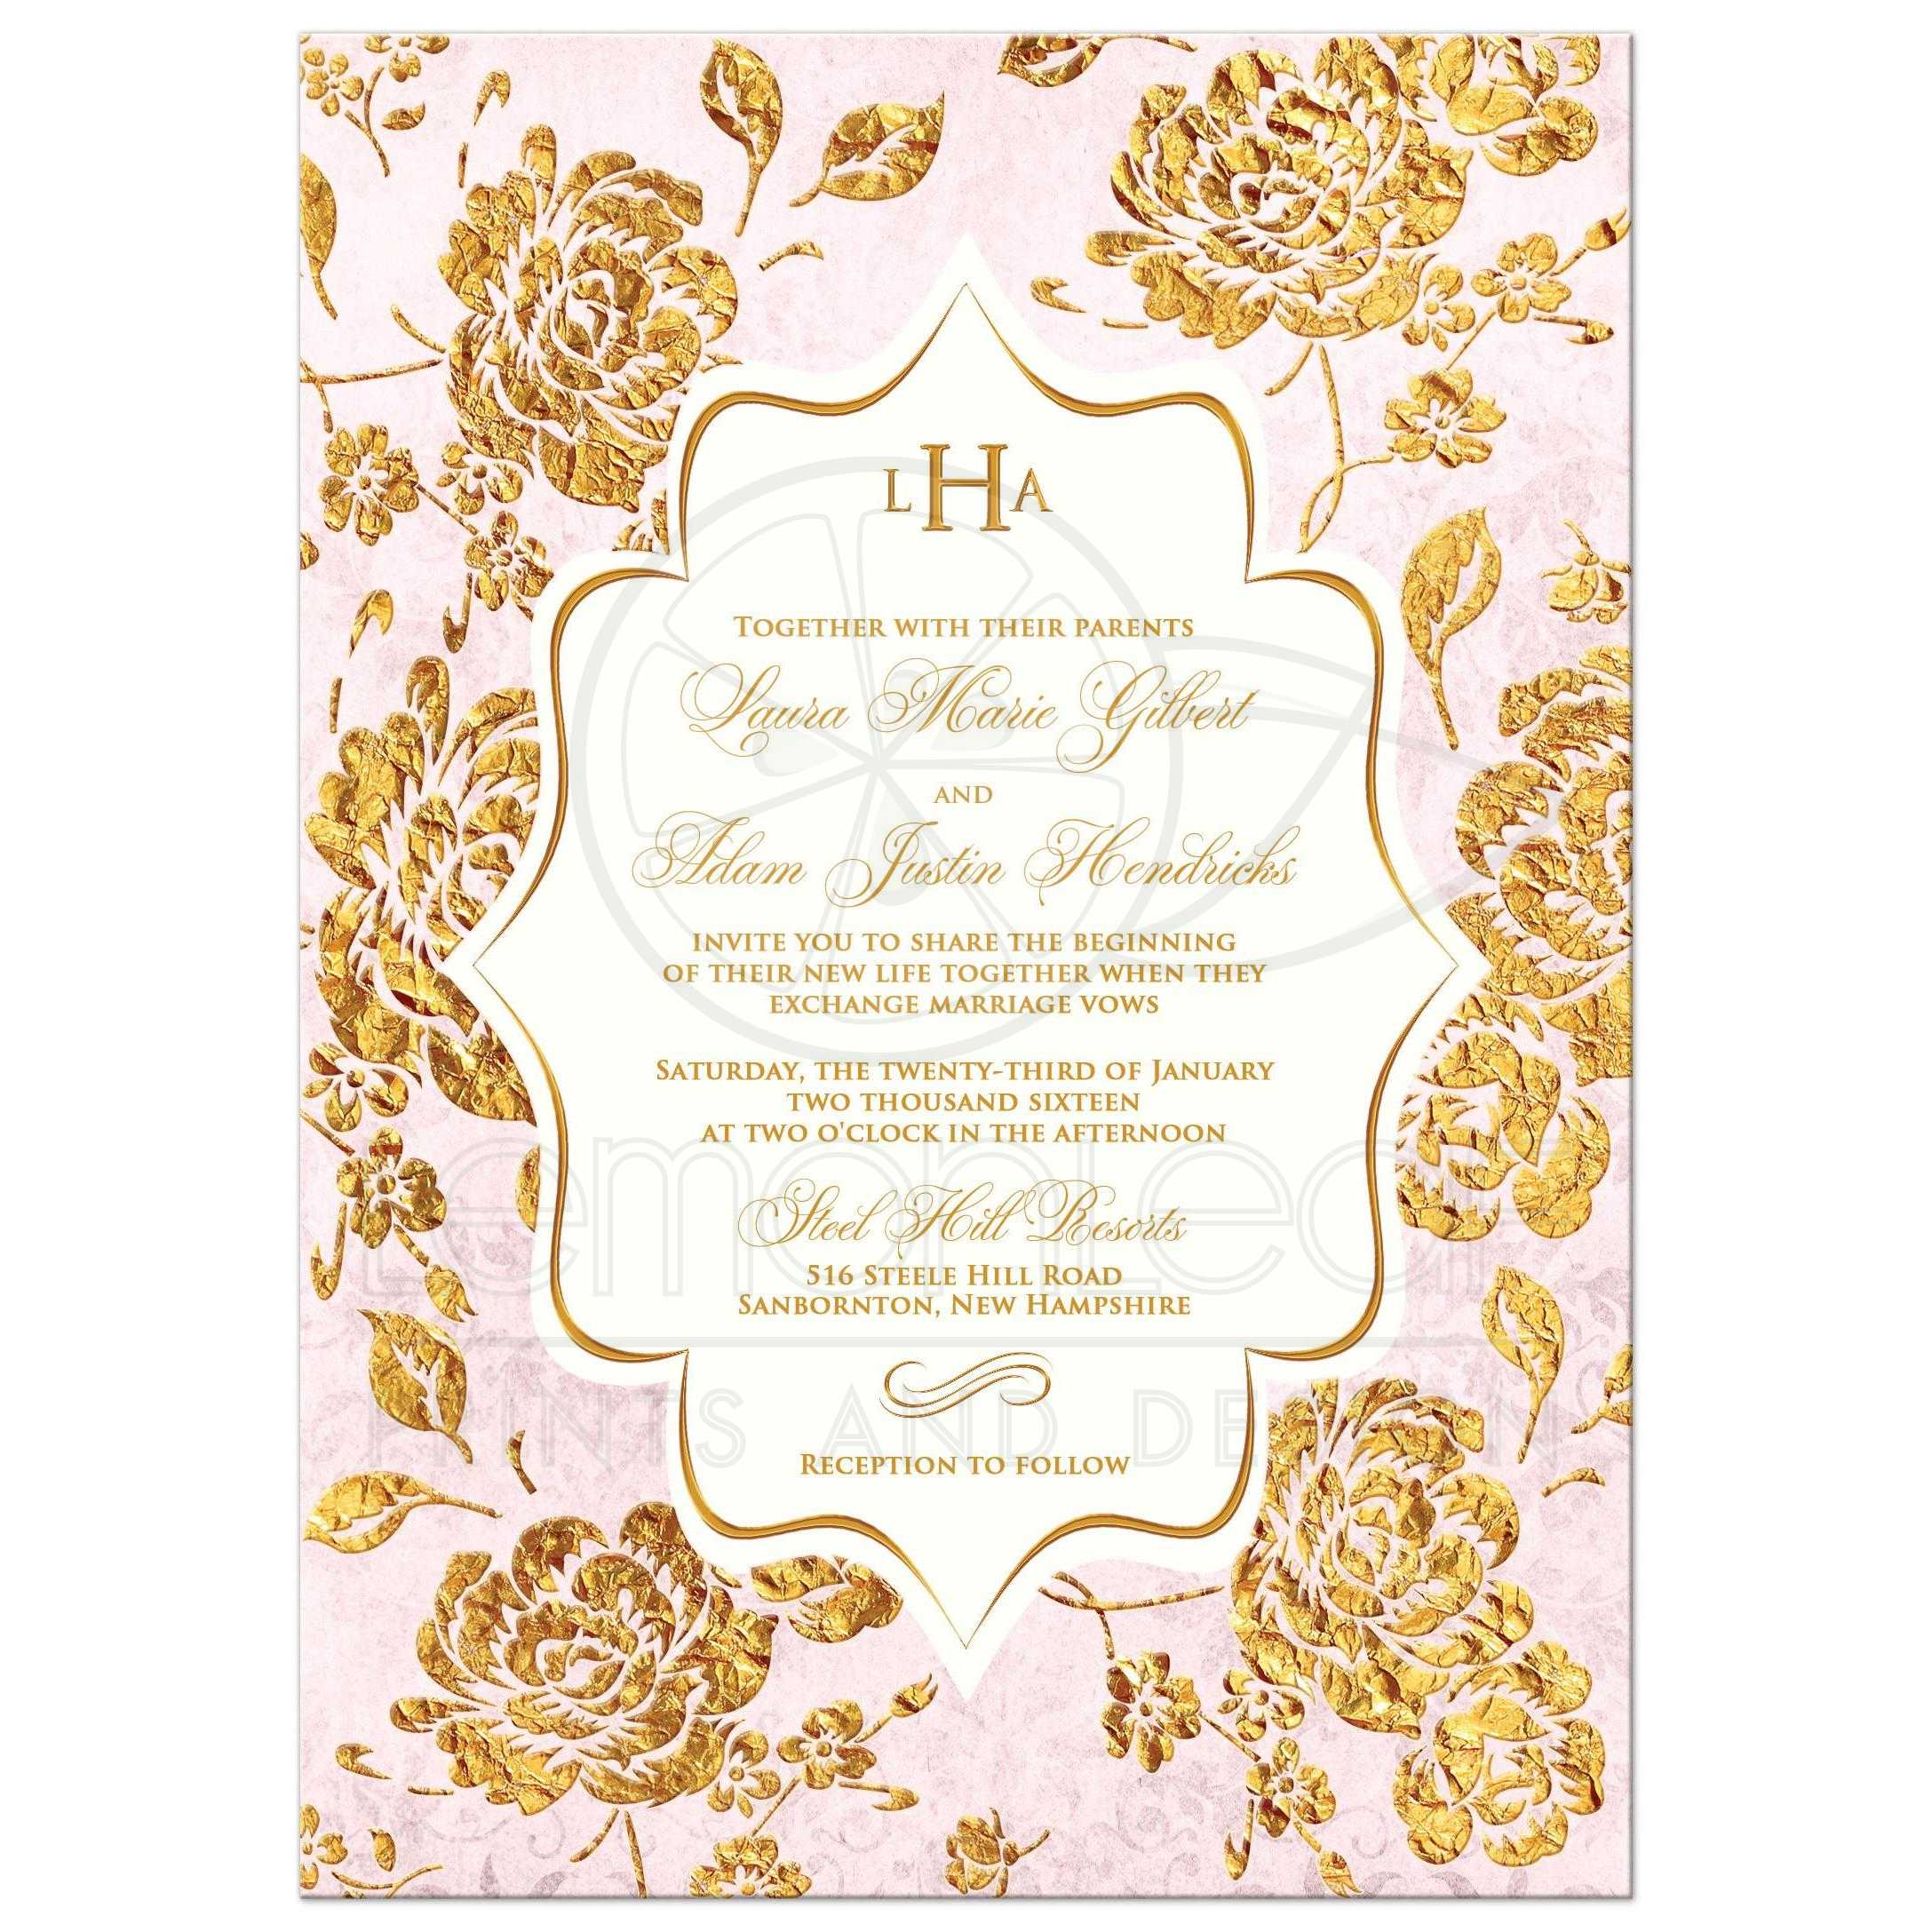 Wedding invitation vintage floral blush pink ivory gold leaf best blush pink ivory and gold floral wedding invitation stopboris Images